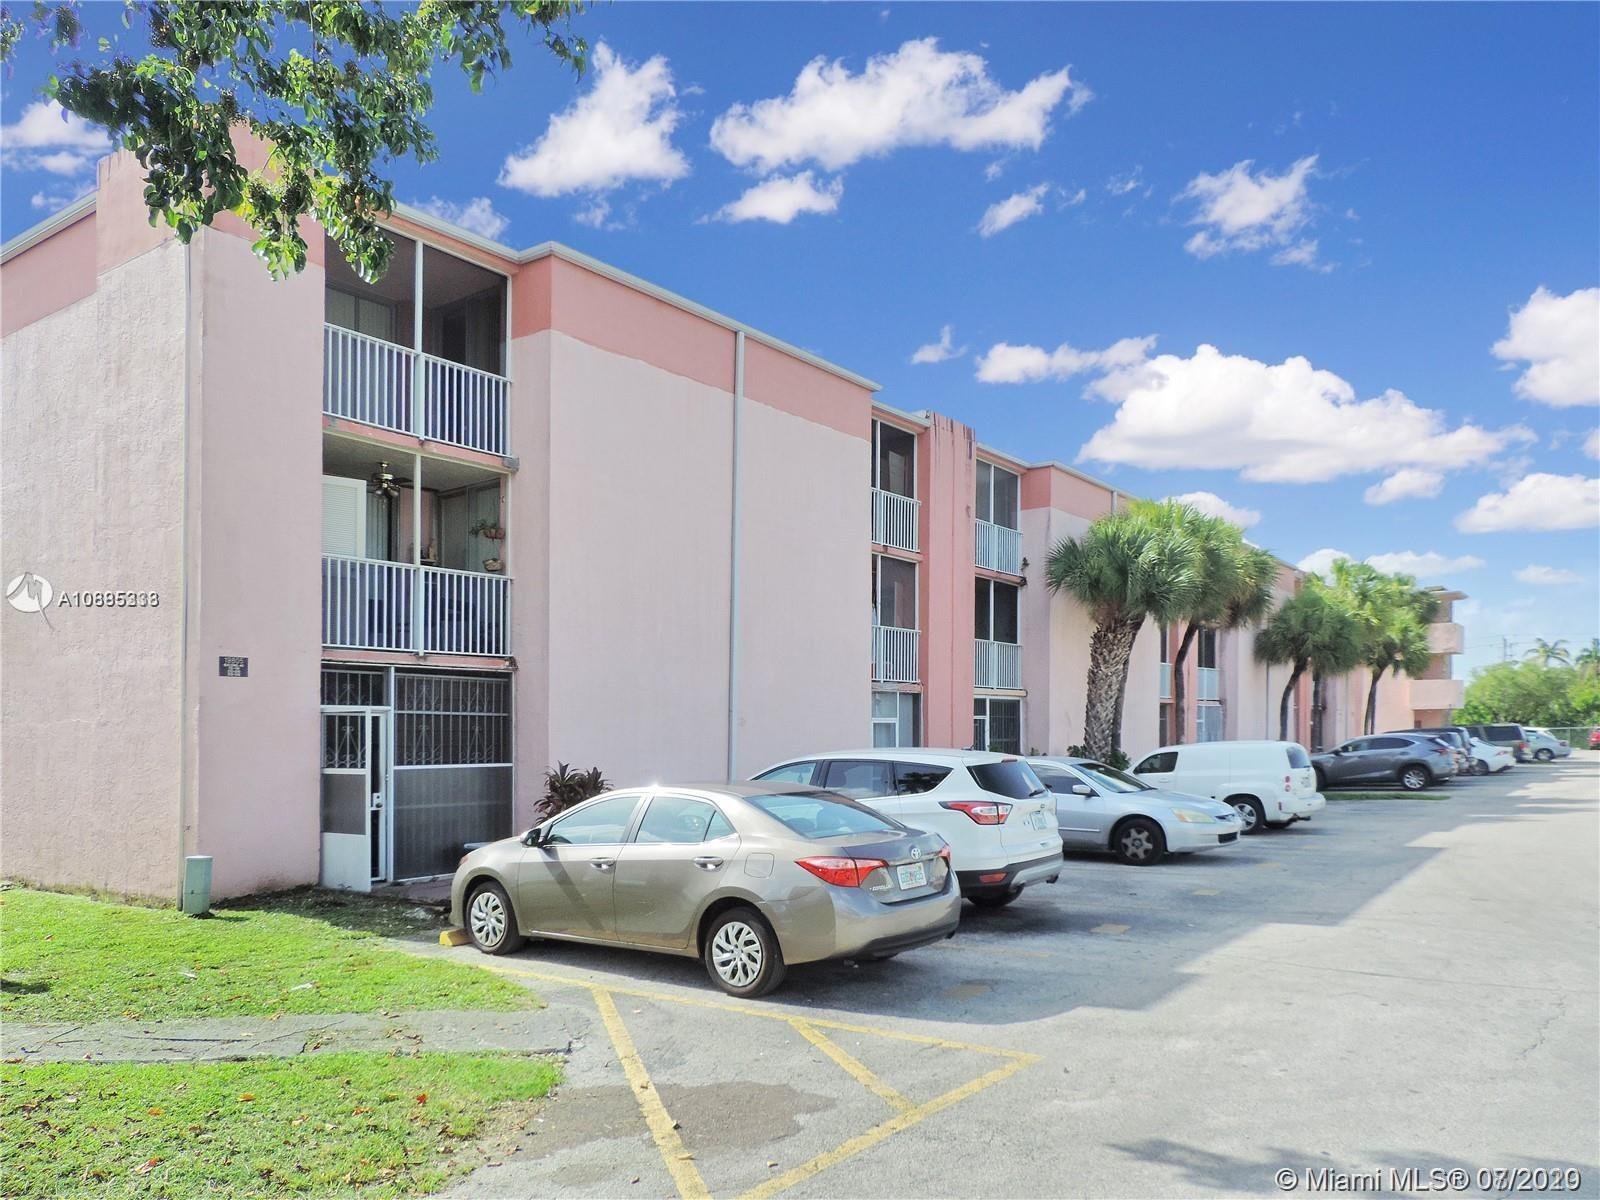 Great for investors 2 bedroom 2 Bathroom 800 SQ FT tile 1st floor with a storage room in good conditions Rented to A plus tenants others units available.